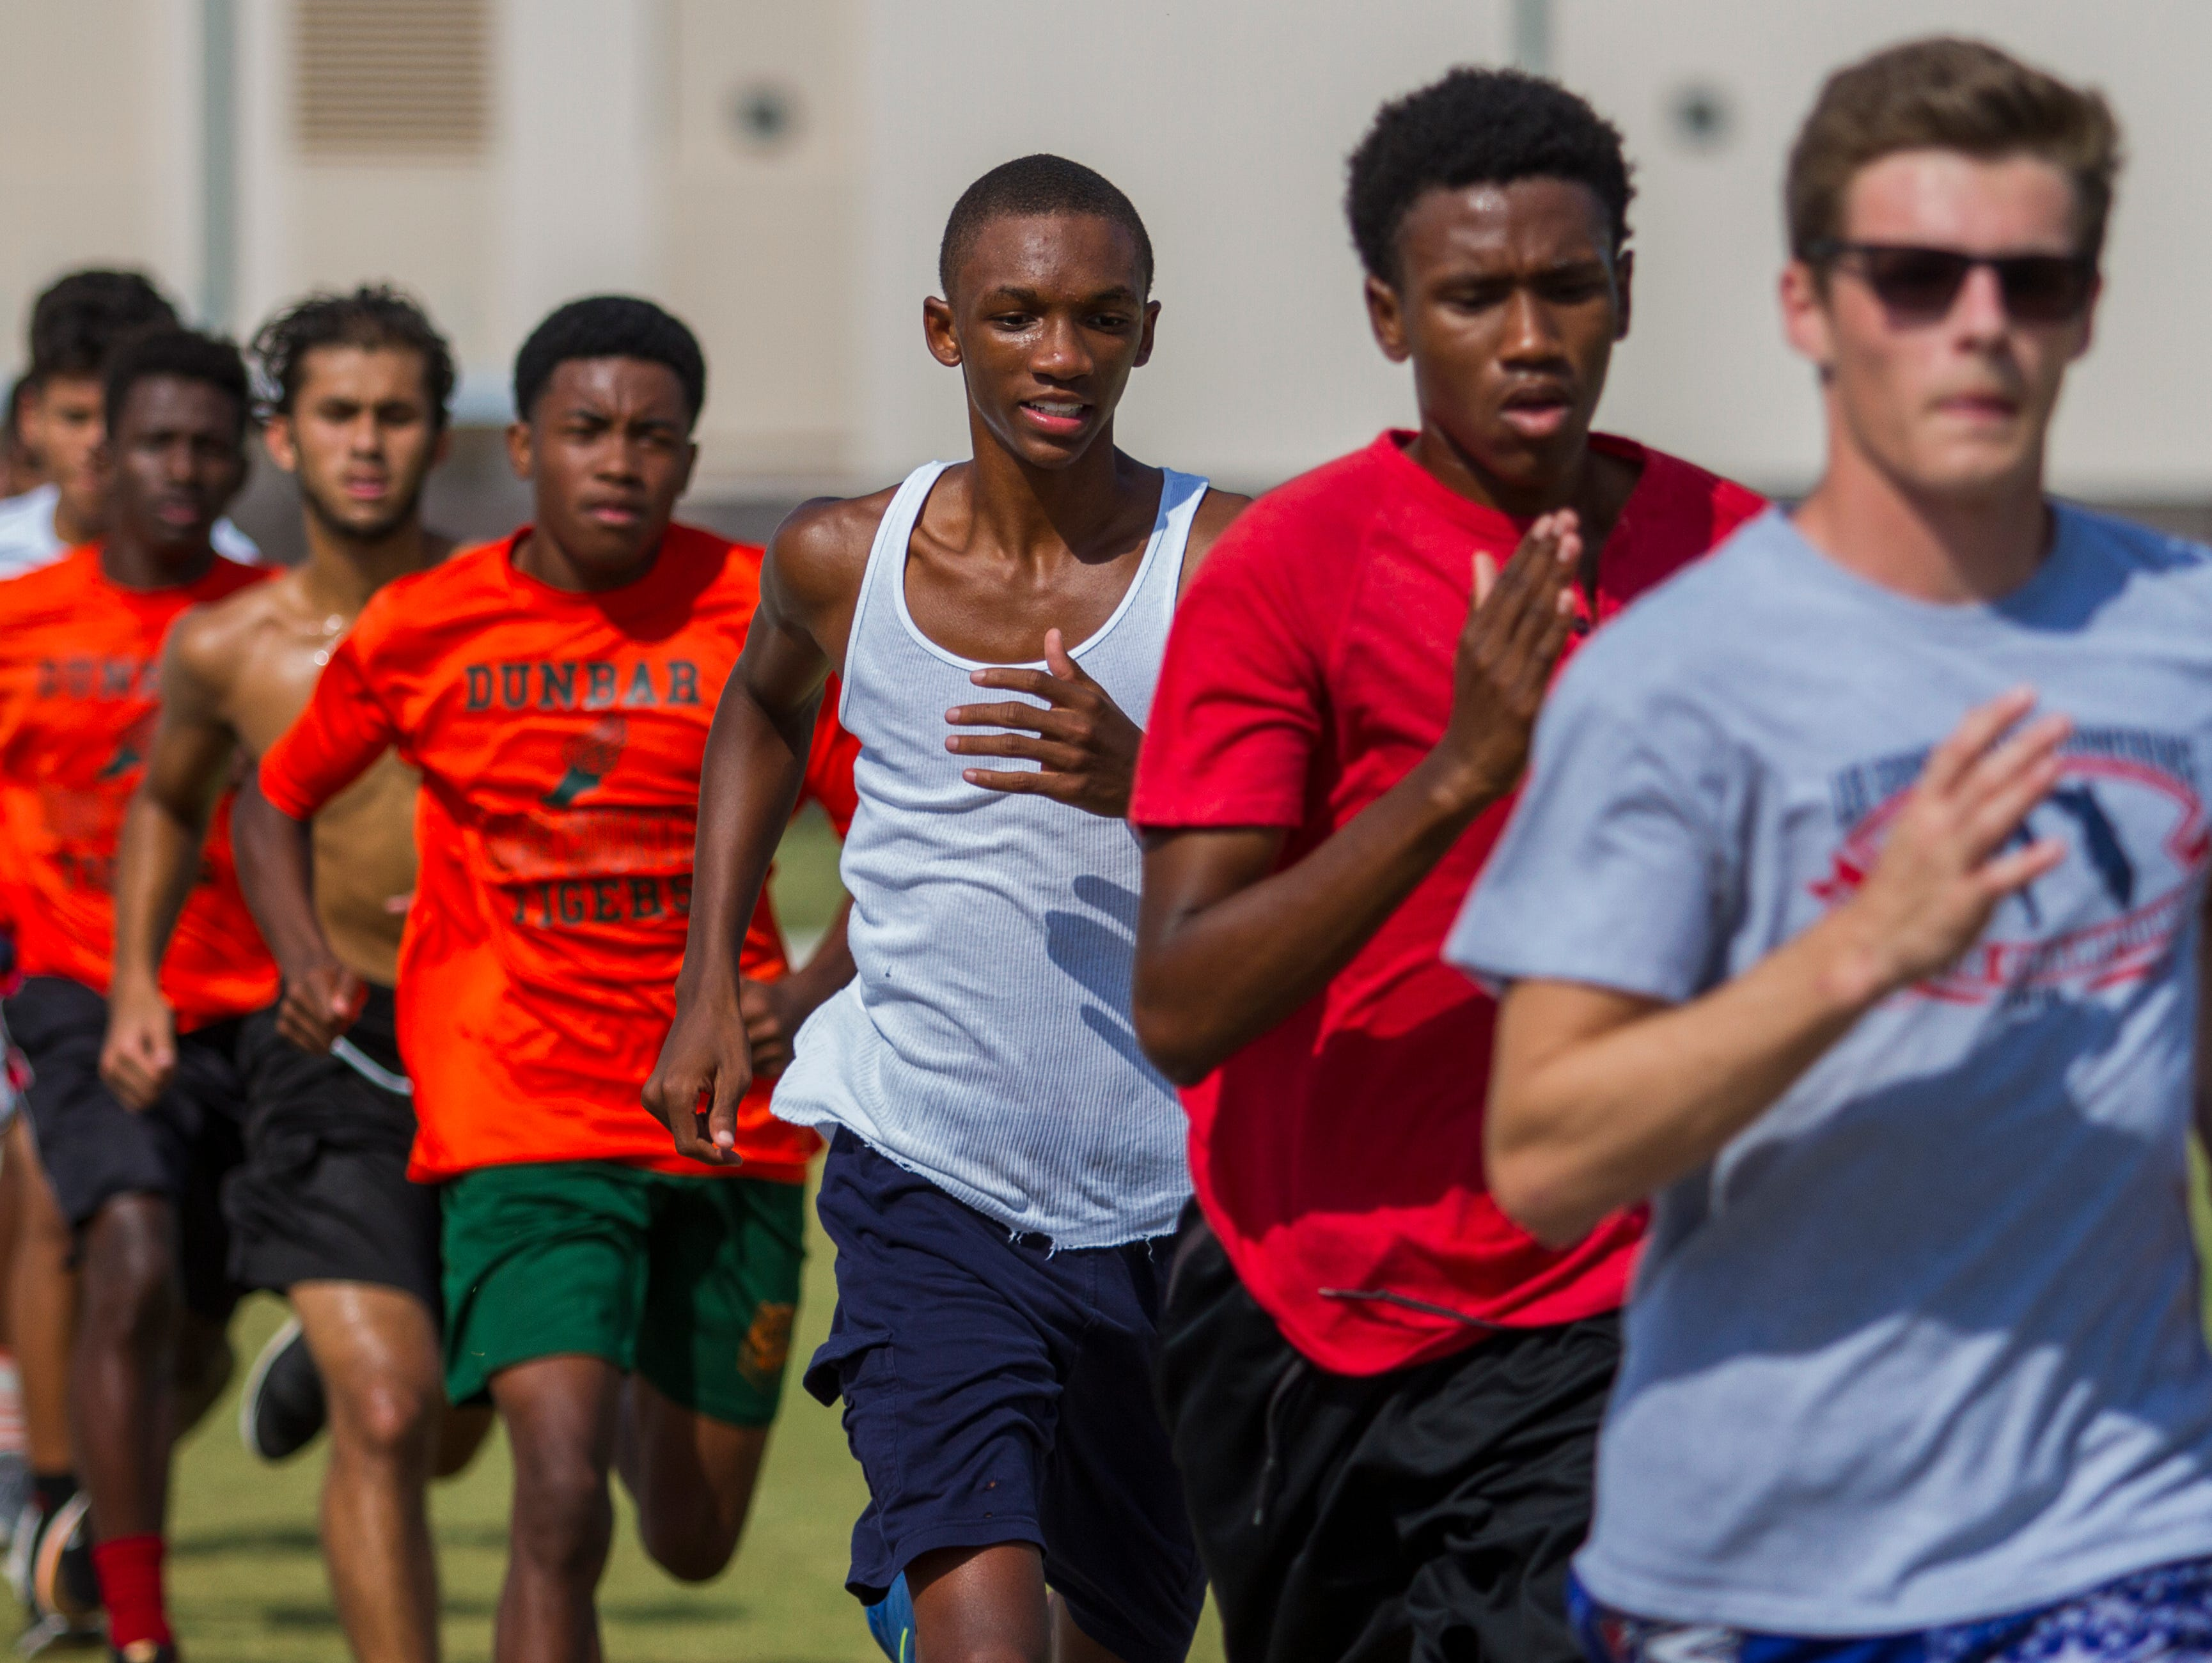 Members of the Dunbar High School cross country team practice after school Wednesday, November 2, at their track in Fort Myers. The cross country team has qualified for its first state championship in school history.